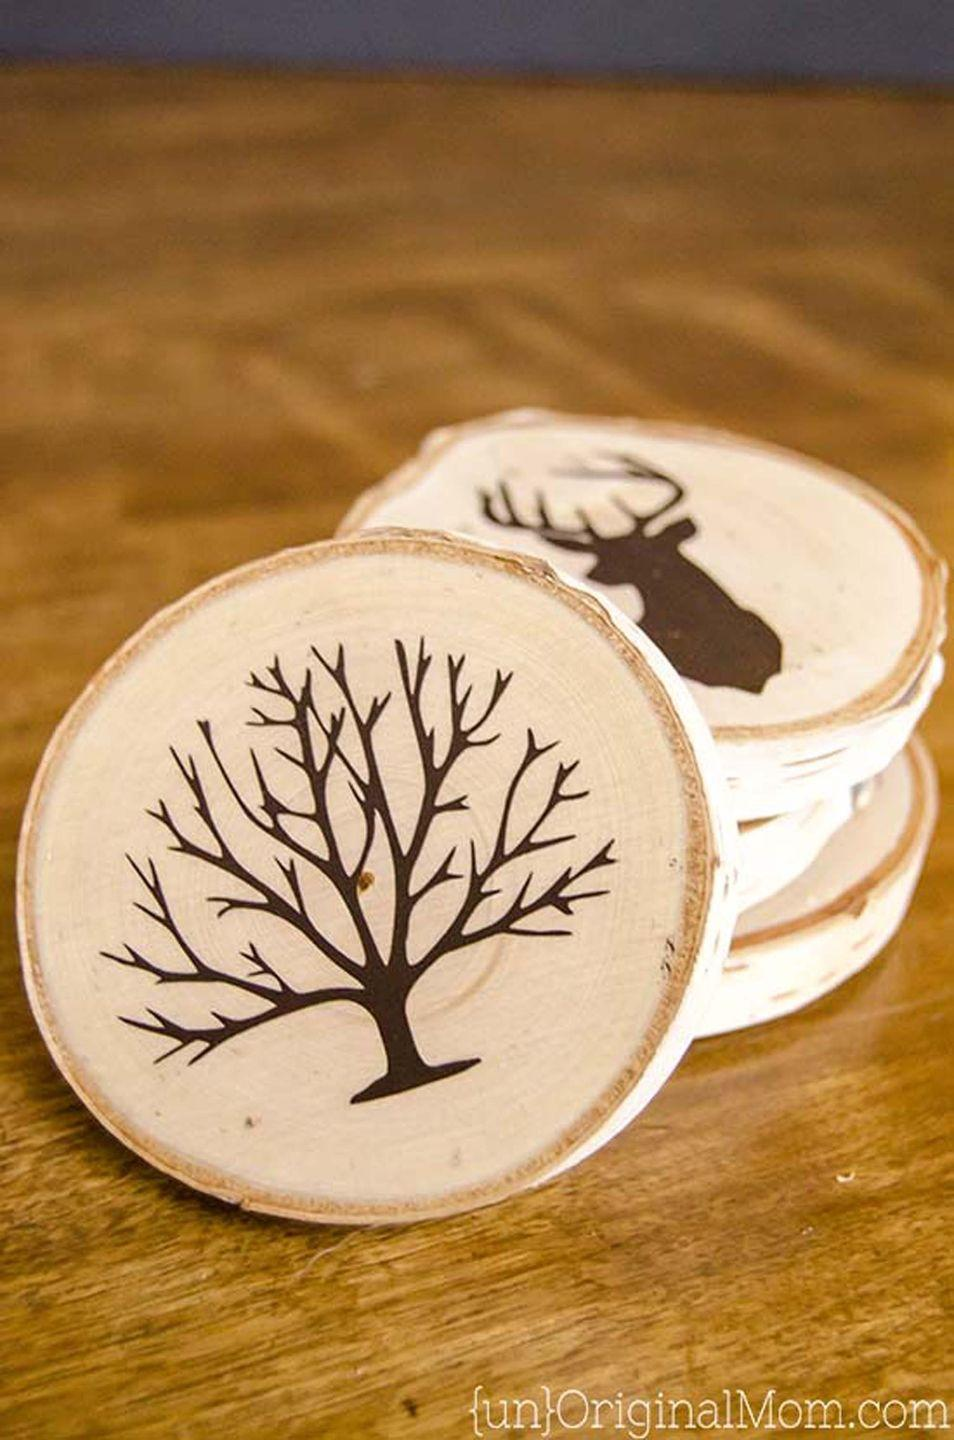 """<p>Customize these DIY coasters with one of Dad's interests, like this hunting-themed set.</p><p><strong>Get the tutorial at <a href=""""https://www.unoriginalmom.com/diy-painted-wood-slice-coasters/"""" rel=""""nofollow noopener"""" target=""""_blank"""" data-ylk=""""slk:Unoriginal Mom"""" class=""""link rapid-noclick-resp"""">Unoriginal Mom</a>.</strong></p><p><a class=""""link rapid-noclick-resp"""" href=""""https://www.amazon.com/Fuhaieec-Unfinished-Natural-Circles-Ornaments/dp/B01M4LNT4V?tag=syn-yahoo-20&ascsubtag=%5Bartid%7C10050.g.1171%5Bsrc%7Cyahoo-us"""" rel=""""nofollow noopener"""" target=""""_blank"""" data-ylk=""""slk:SHOP WOOD SLICES"""">SHOP WOOD SLICES</a></p>"""